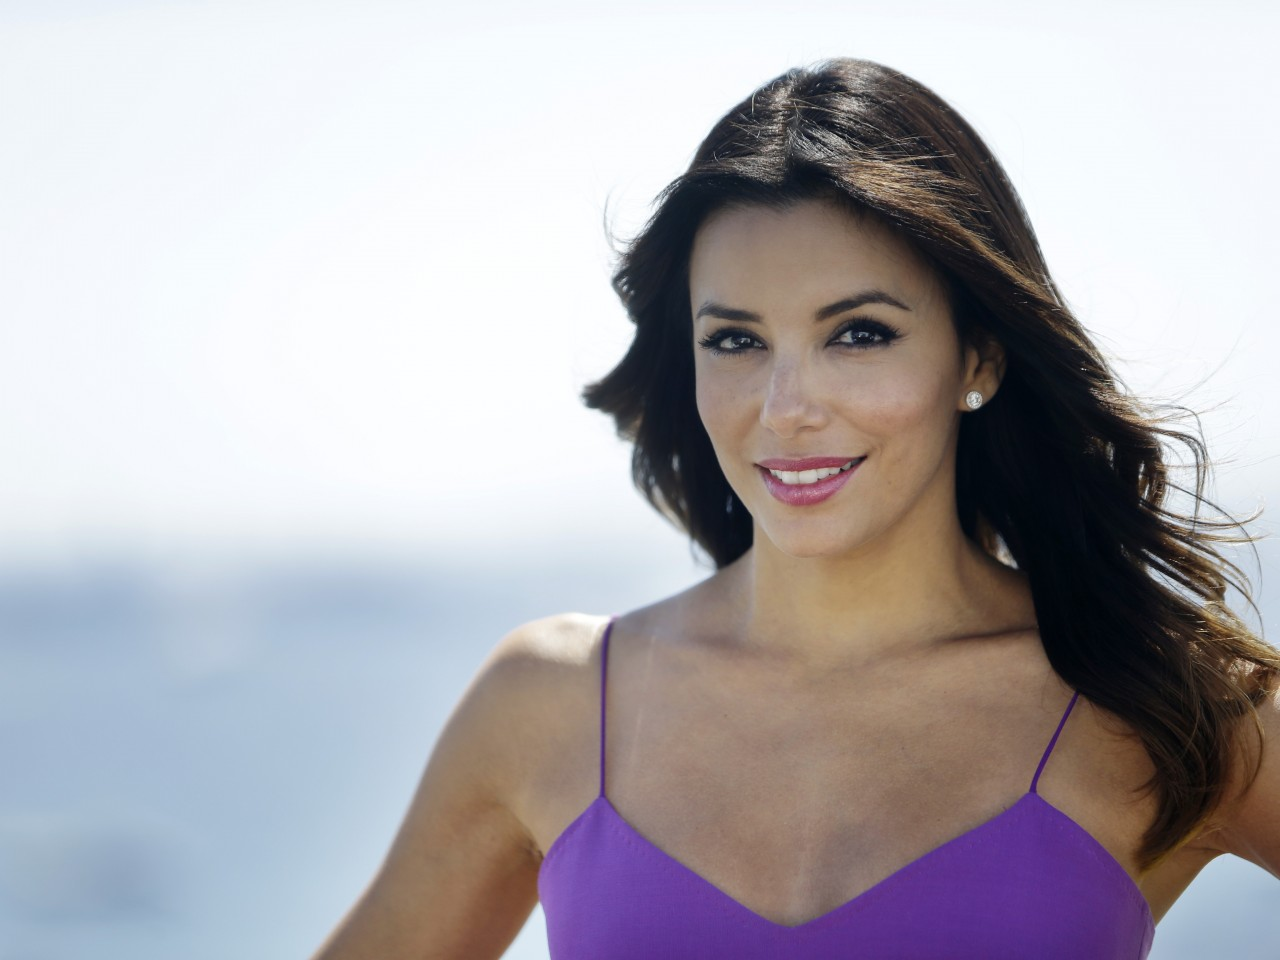 Amazing Eva Longoria Beautiful Smile Face And Tree Leaf In Hands With Background Tree Free Hd Desktop Mobile Wallpaper